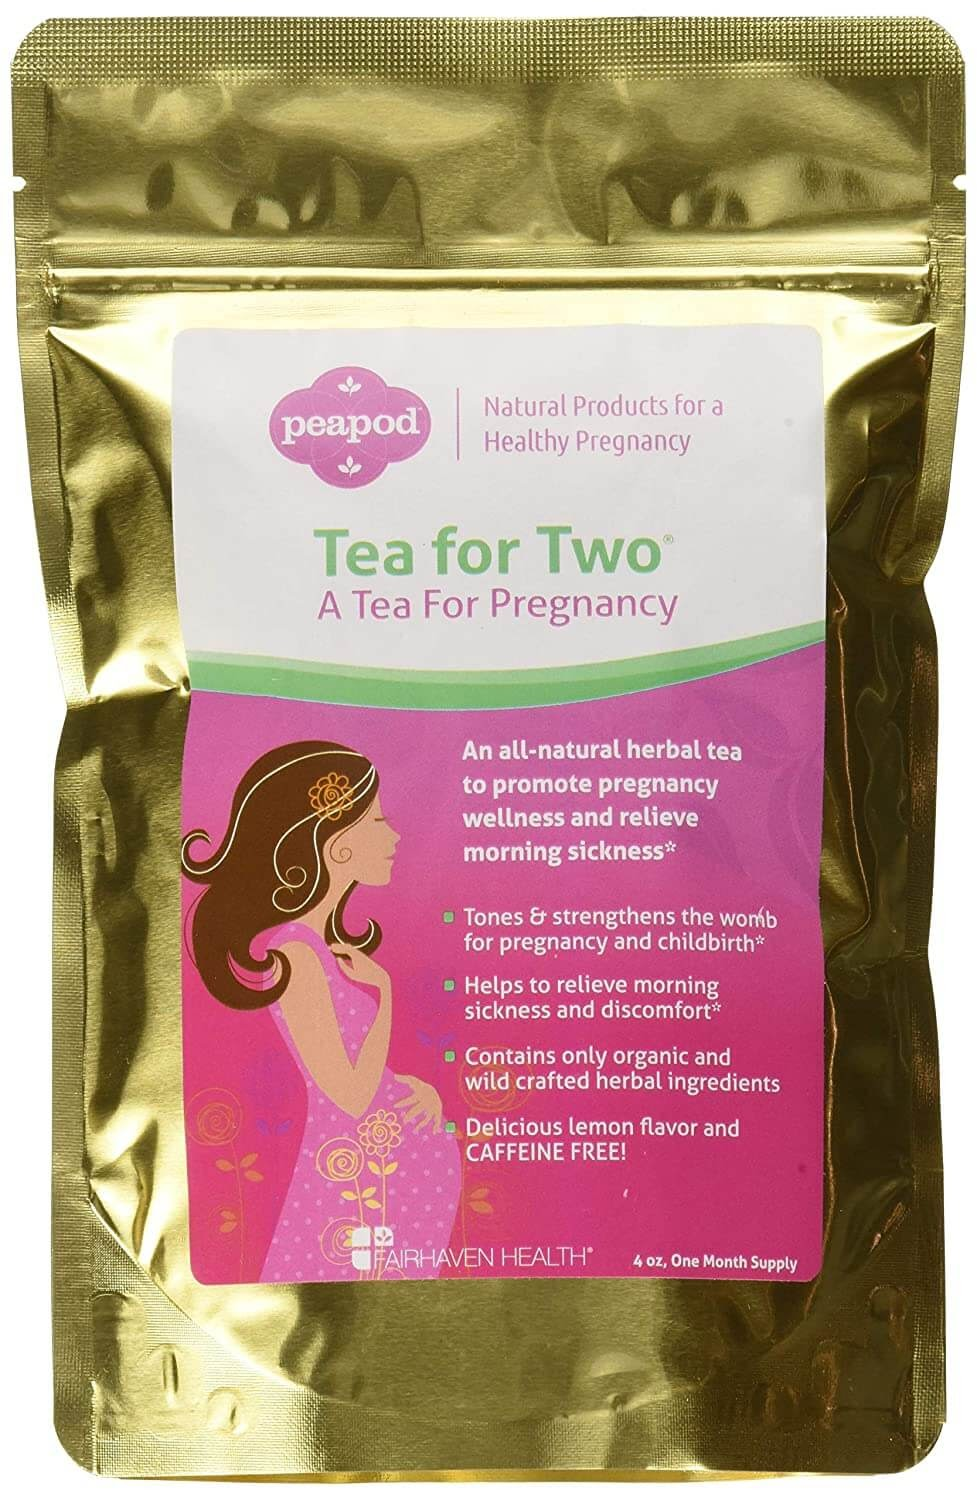 Tea for Two: Tea for Pregnancy